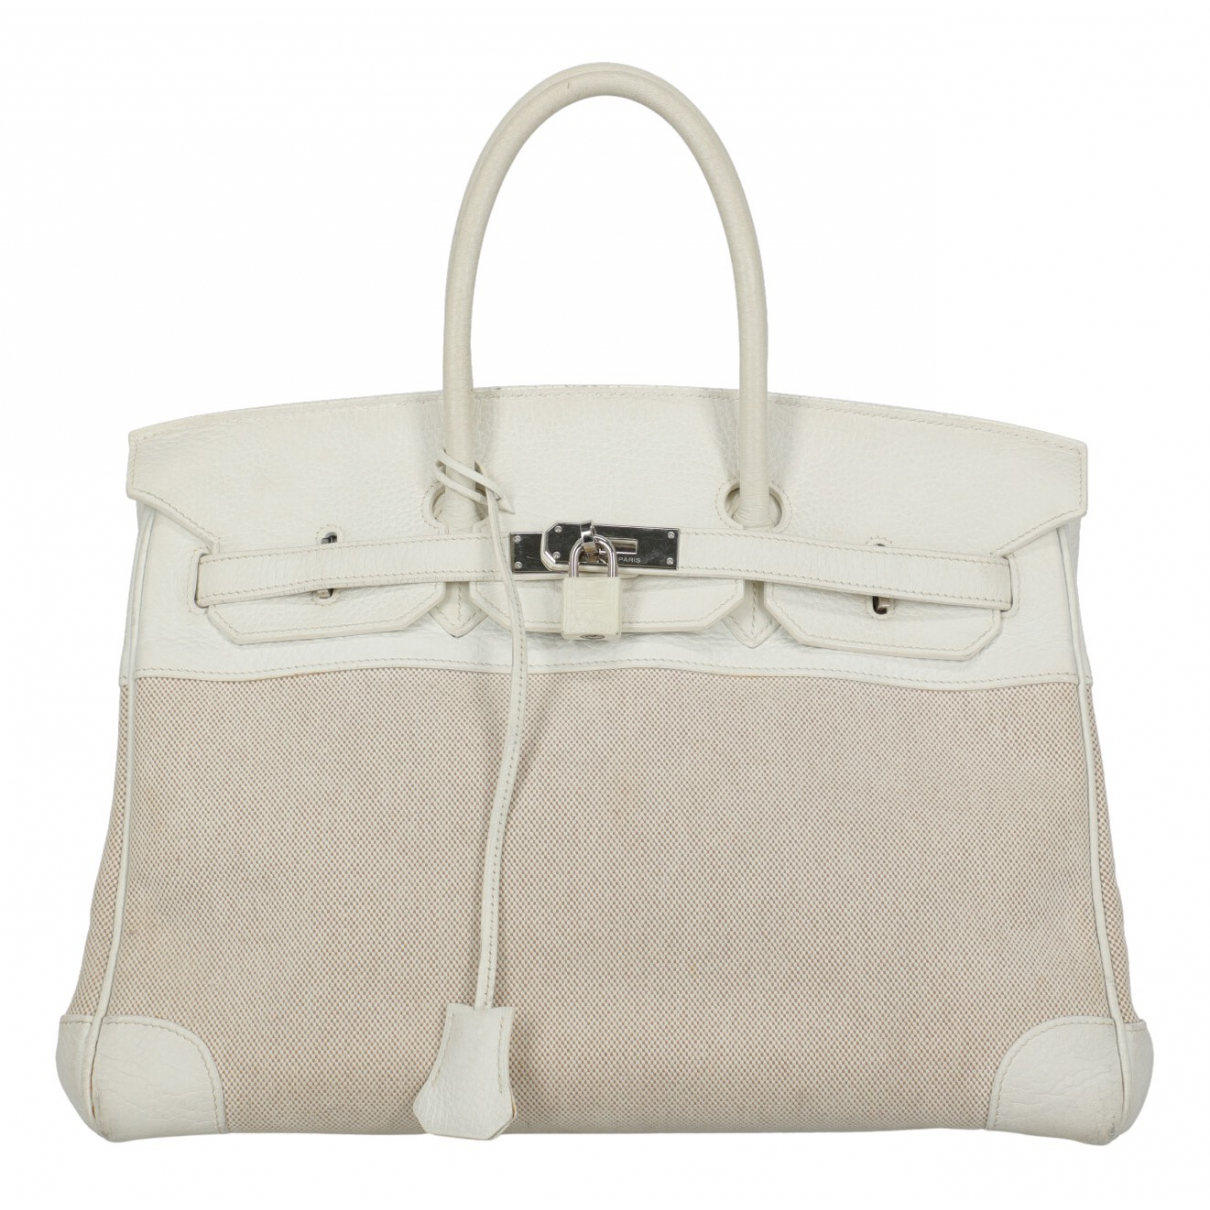 Hermès Birkin 35 White Leather handbag for Women N